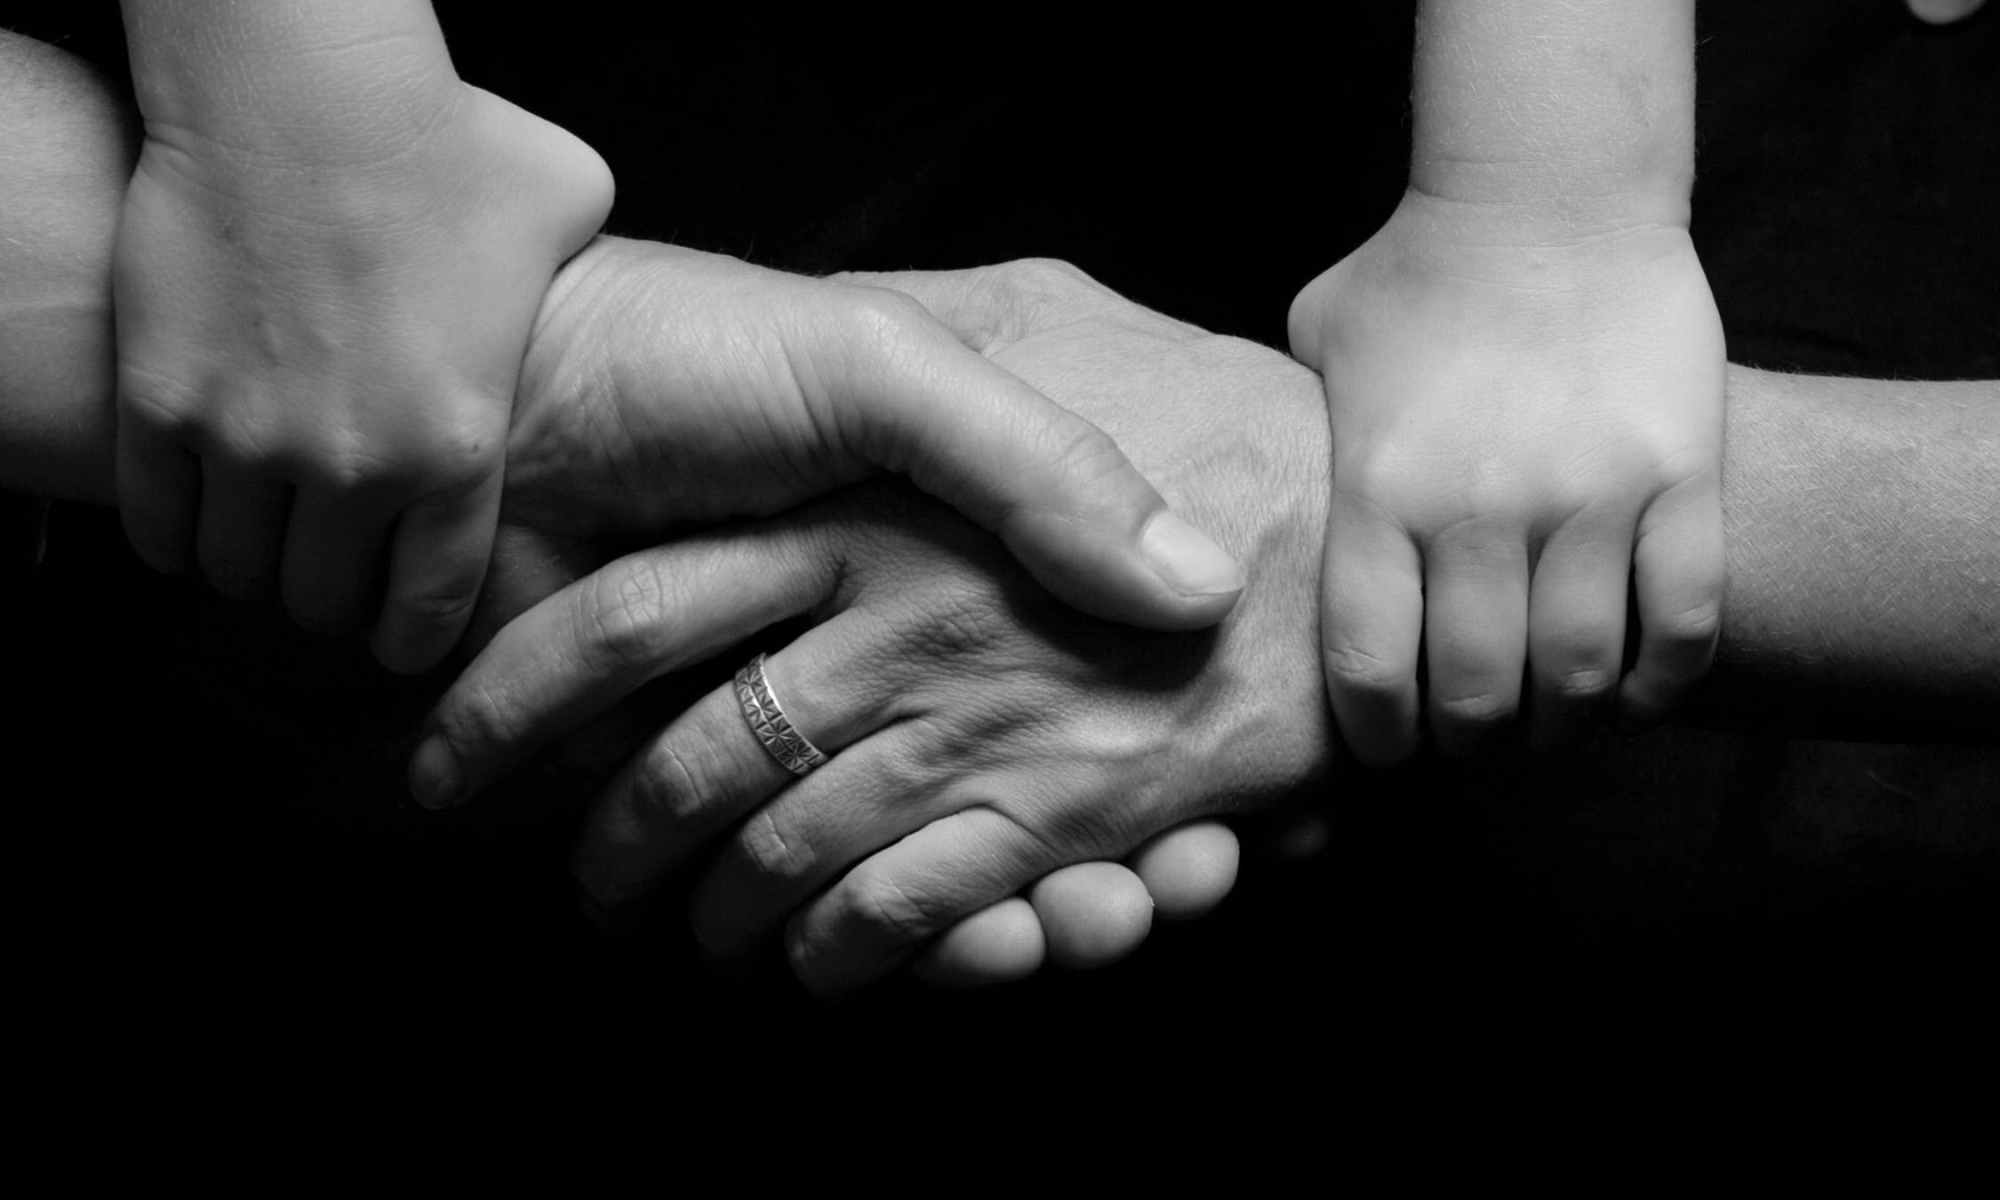 Black and white photography of two adult hands shaking with two child hands holding adult arms